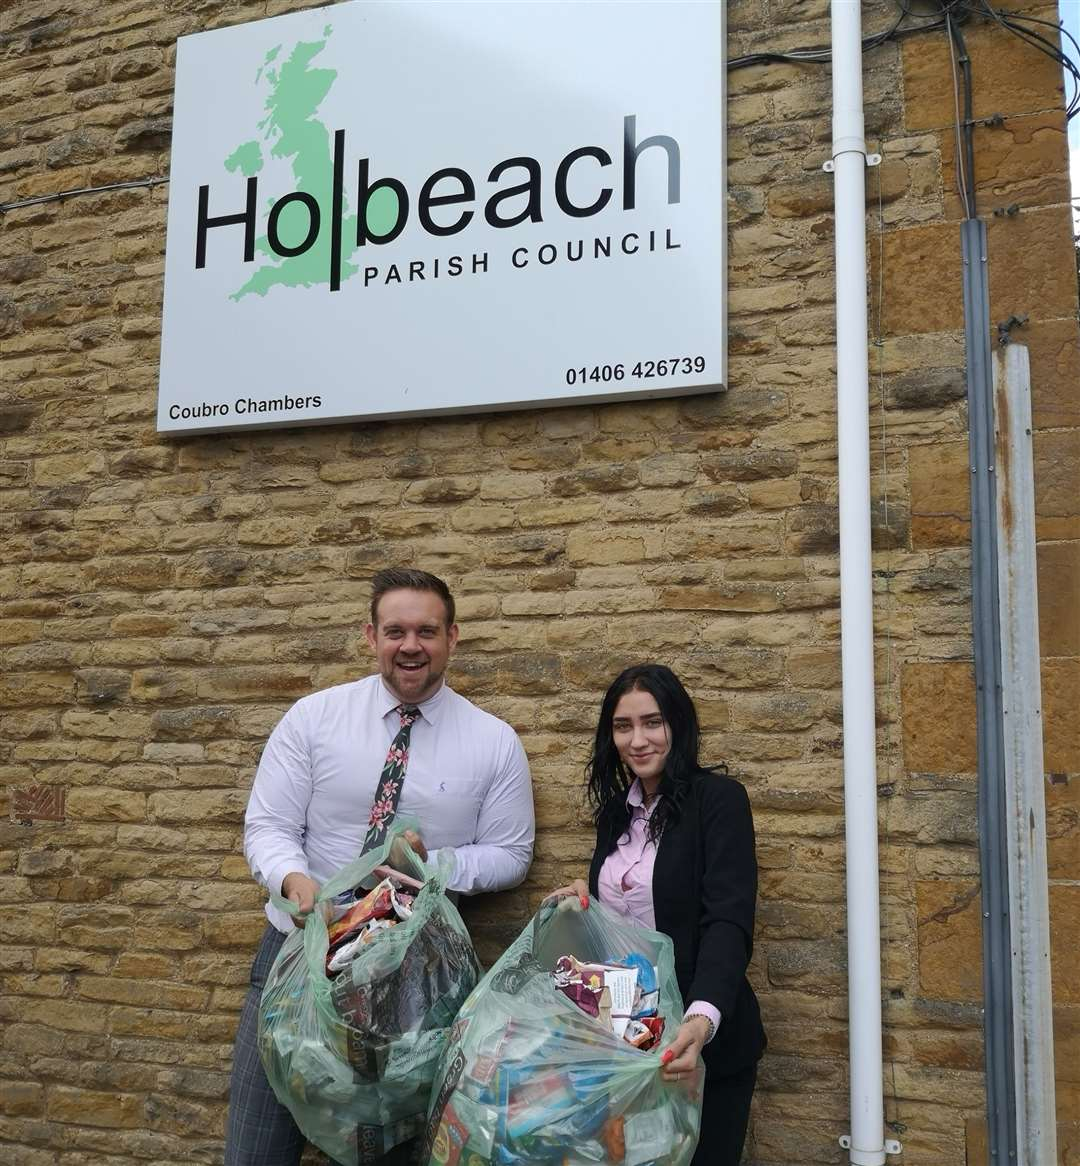 Parish clerk David Boyce and apprentice Brandi Rogan with some of the empty crisp packets dropped in at Holbeach Parish Council's offices in West End.Photo supplied.